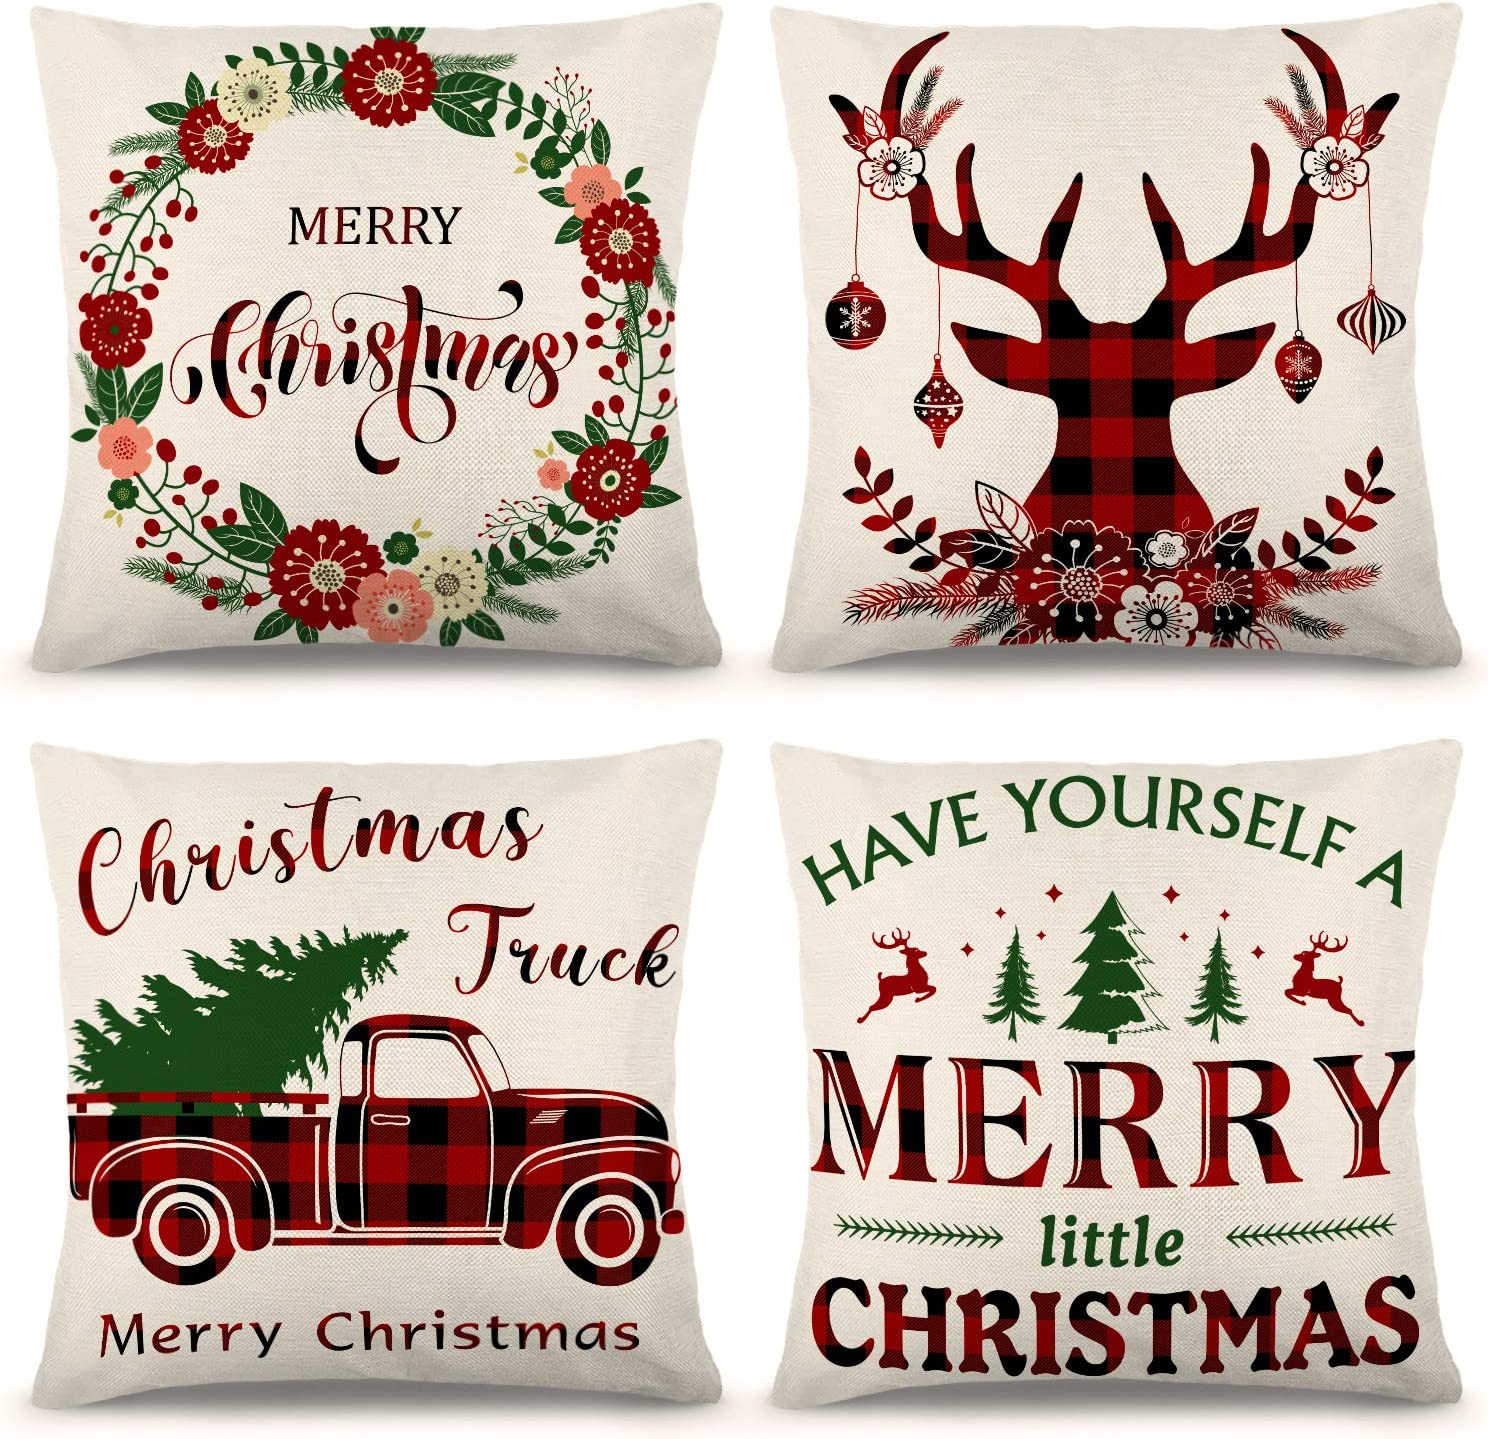 Ueerdand Christmas Pillow Covers 18/×18 Inch Set of 4 Black and Red Farmhouse Buffalo Plaid Pillow Covers Rustic Linen Pillow Case for Sofa Couch Holiday Christmas Decorations Throw Pillow Covers